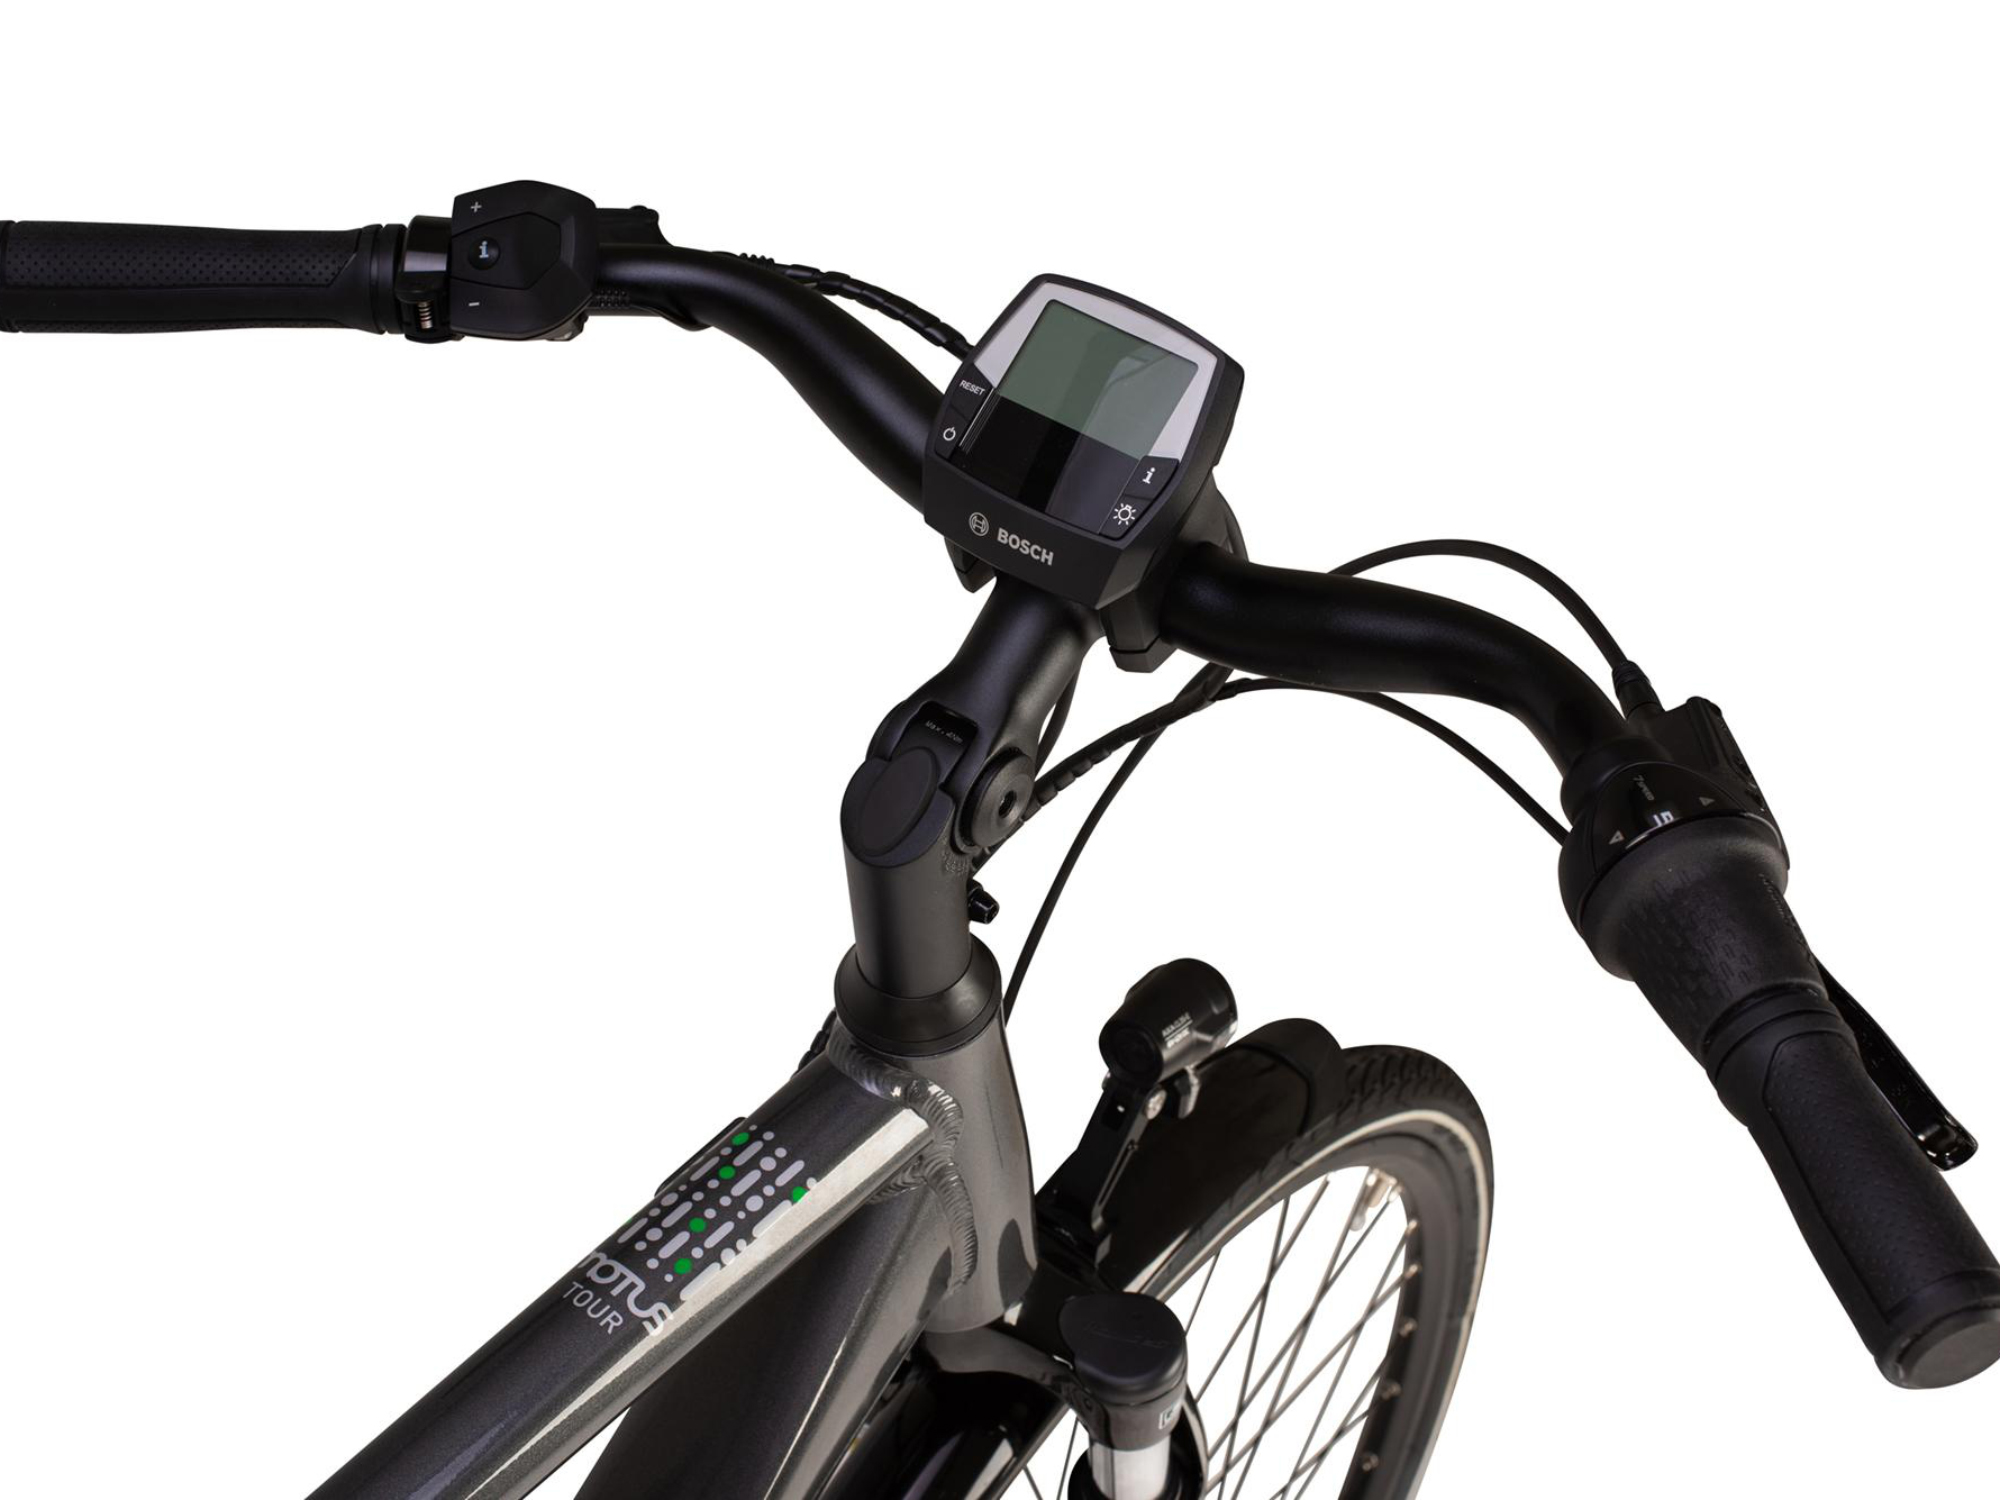 Raleigh Motus Tour electric bike handlebars and controller